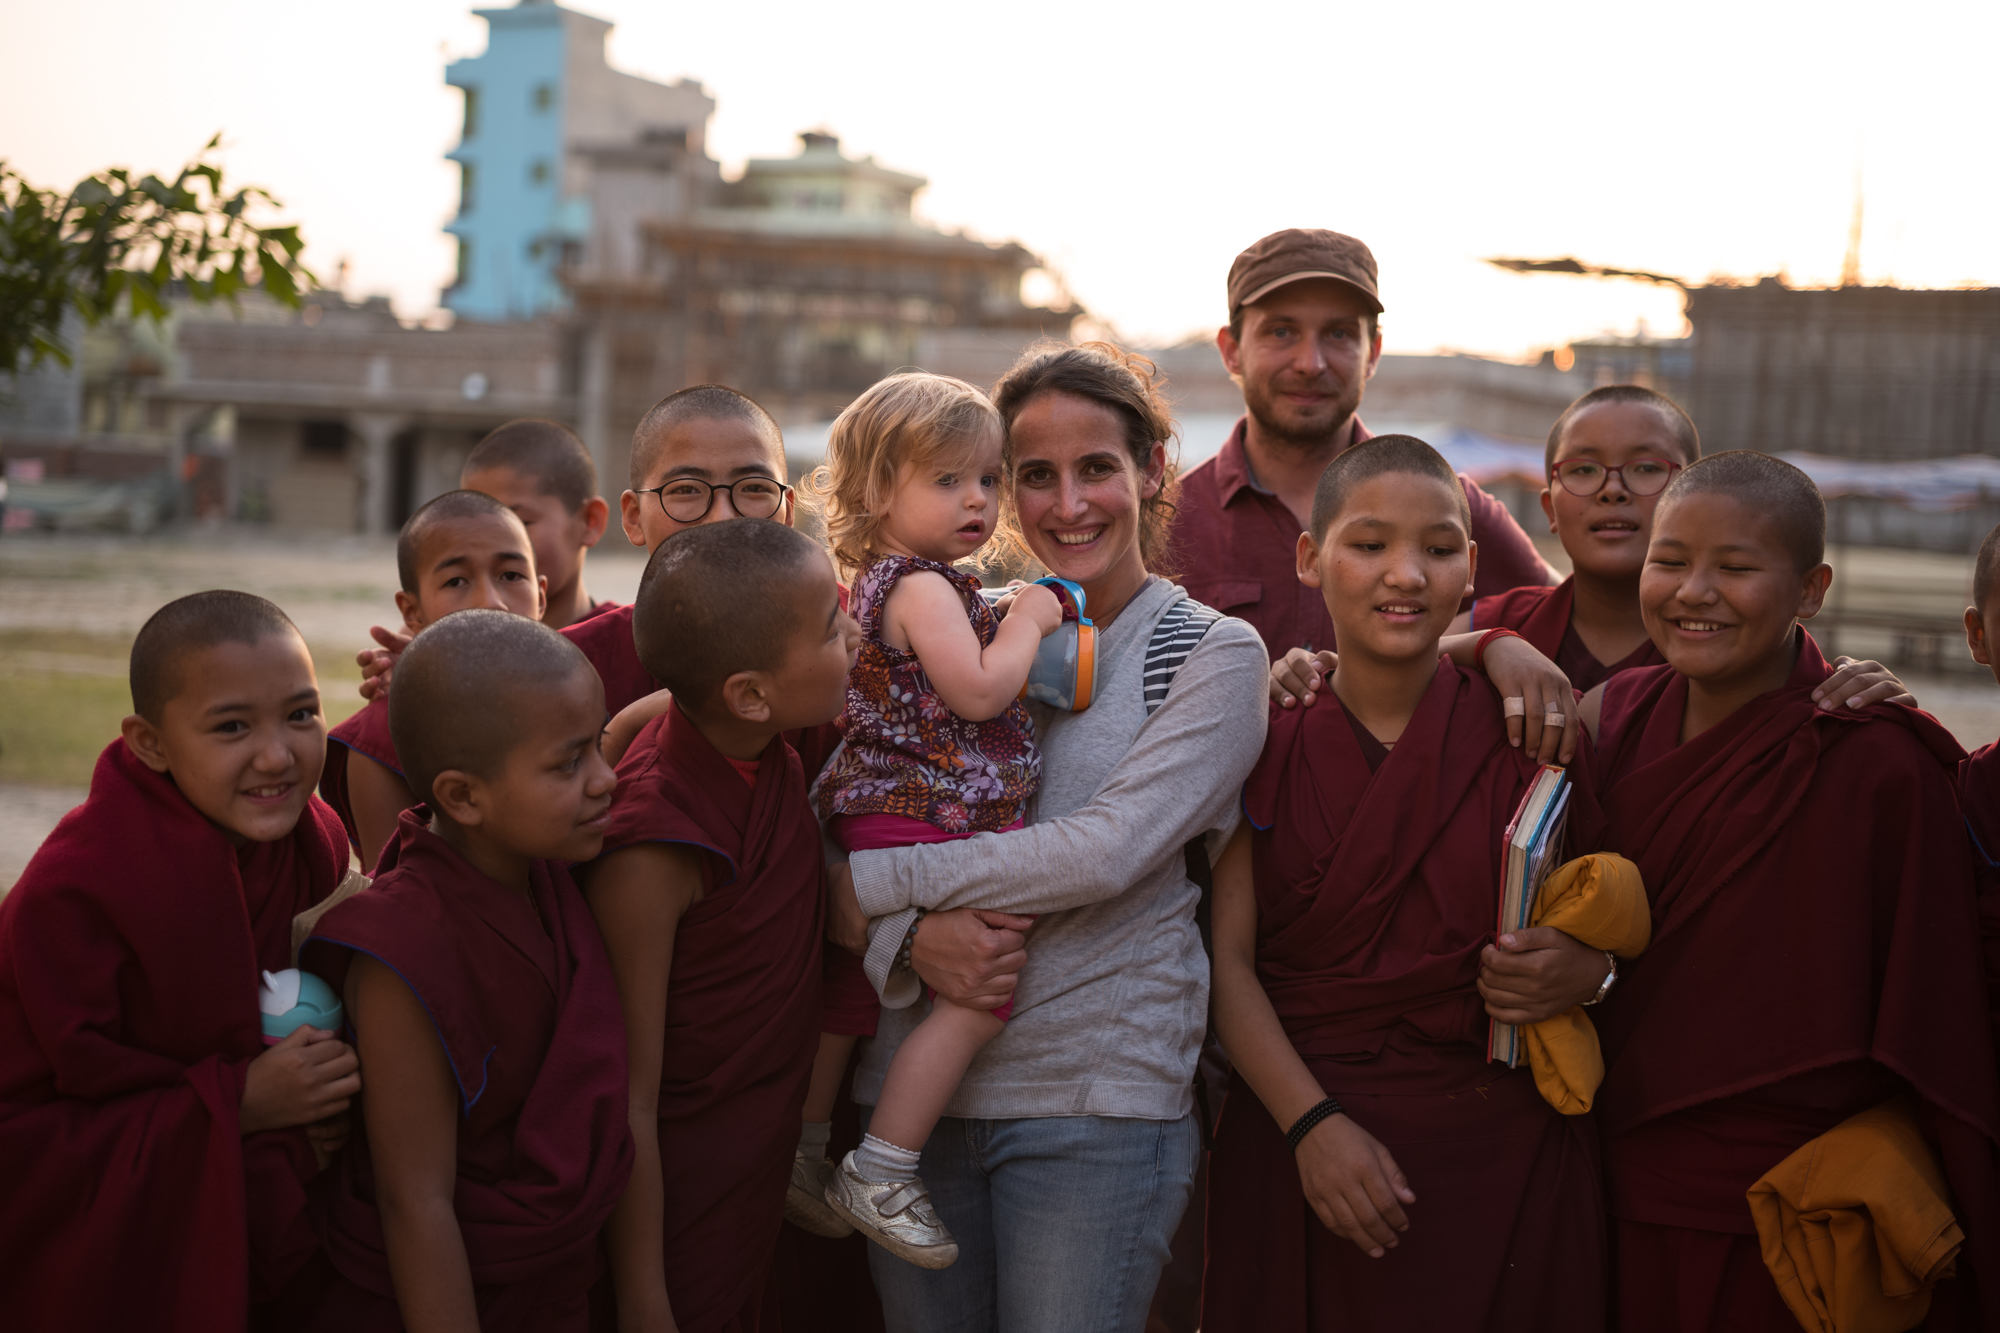 Nepal_Phill O'Leary_72_20181012-L1000647.jpg